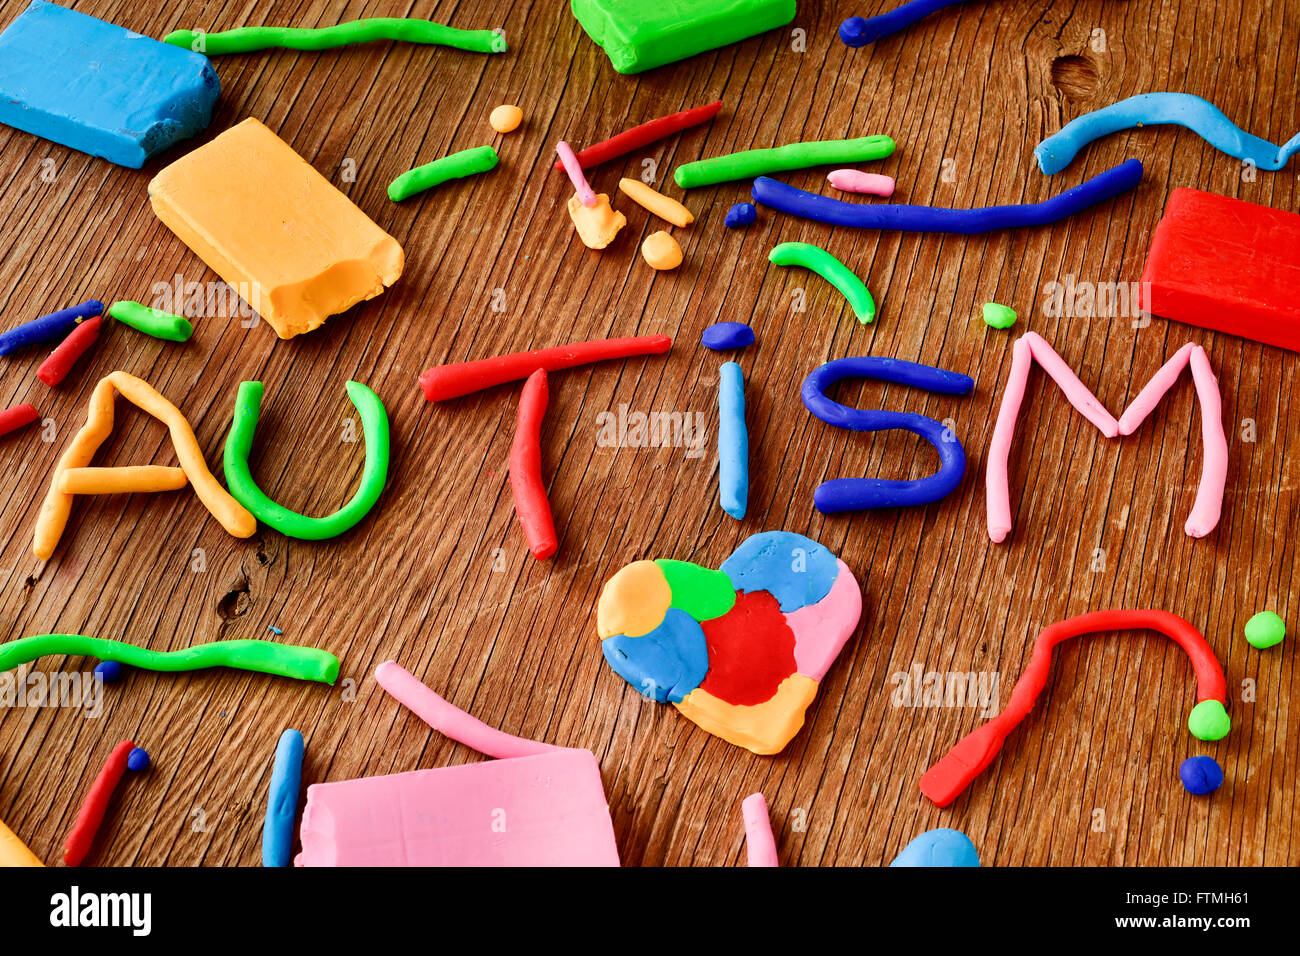 the word autism made from modelling clay of different colors on a rustic wooden surface - Stock Image